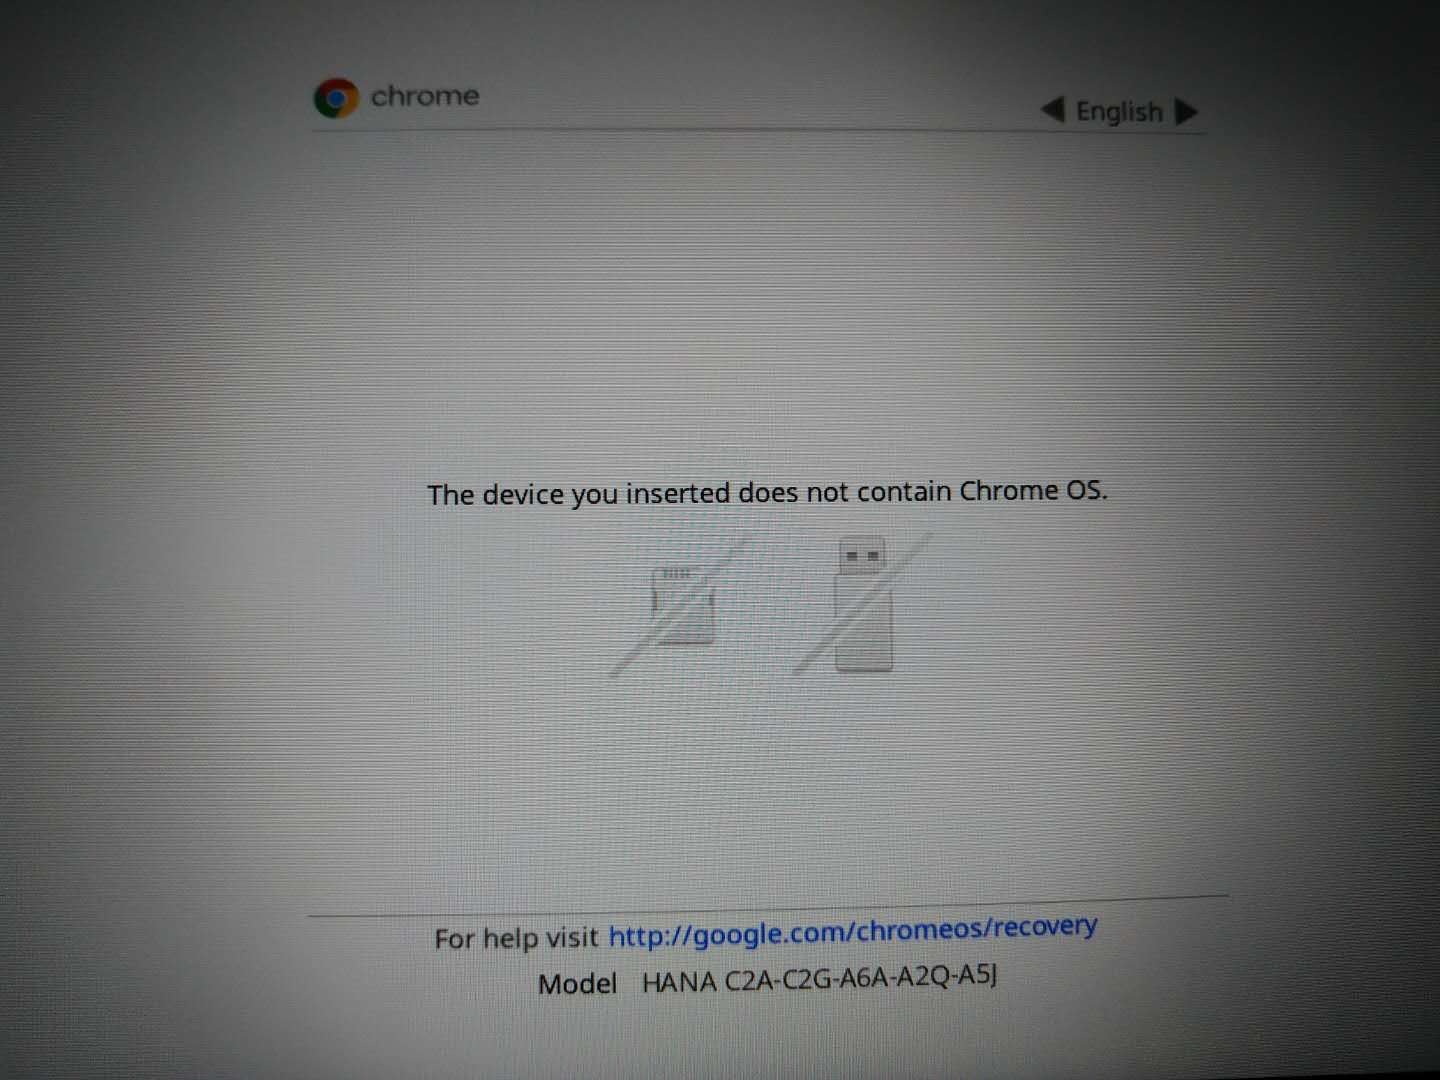 Lenovo N23 Yoga, chrome os damaged, cannot recovery from USB